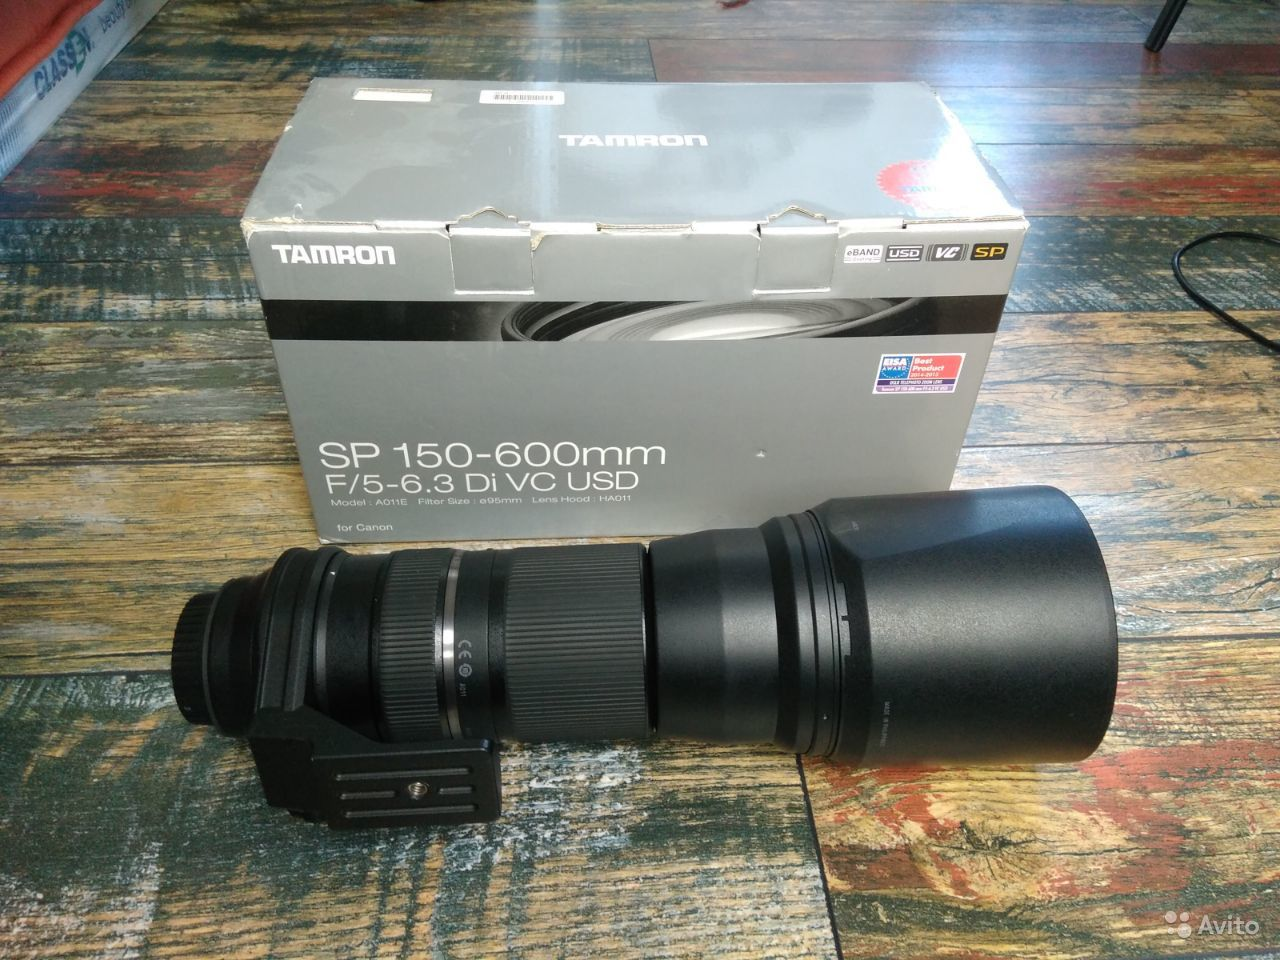 Tamron SP 150-600mm a011 Canon EF